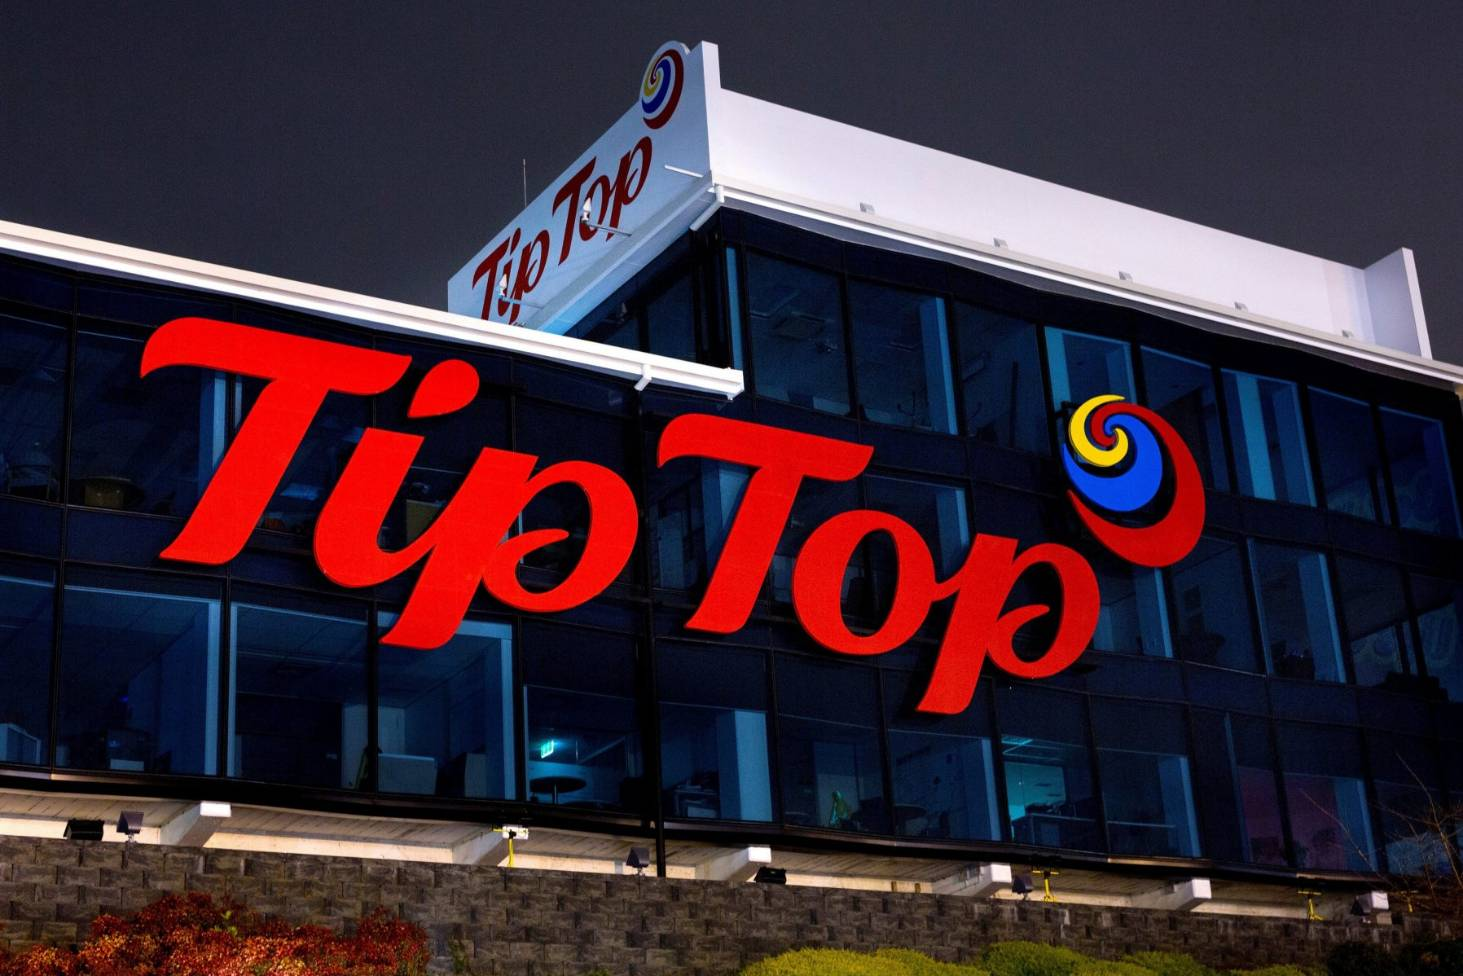 Fonterra sells Tip Top to global ice cream giant Froneri for $380m